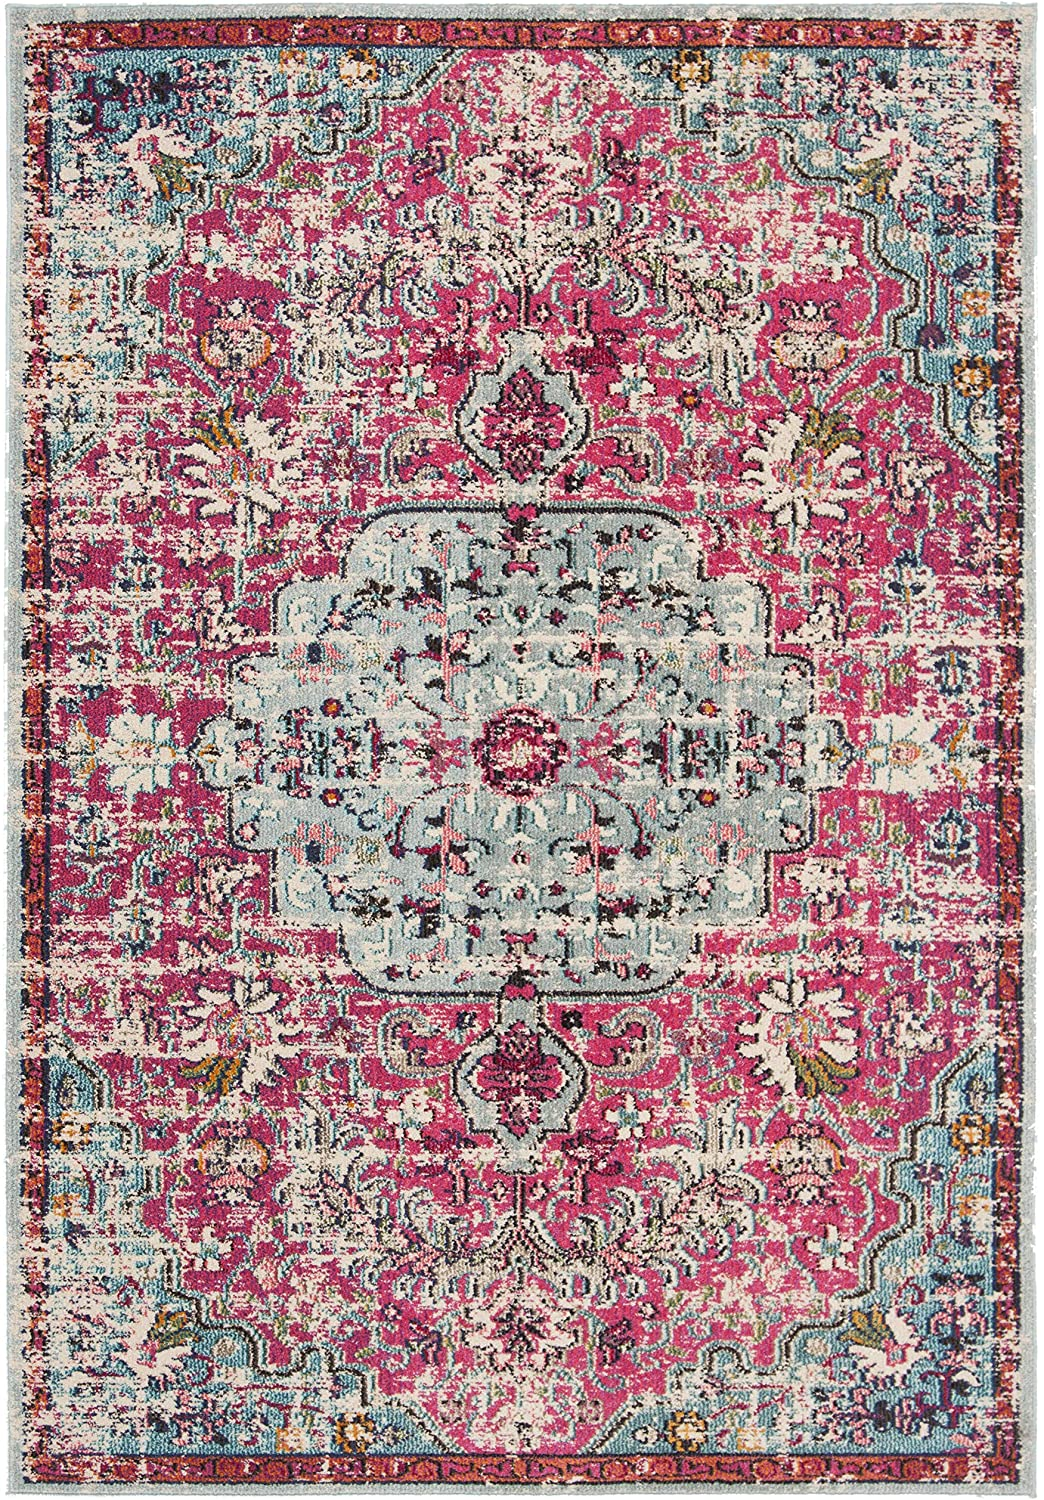 Boho Chic Vintage Medallion Distressed Runner,  Fuchsia/Teal